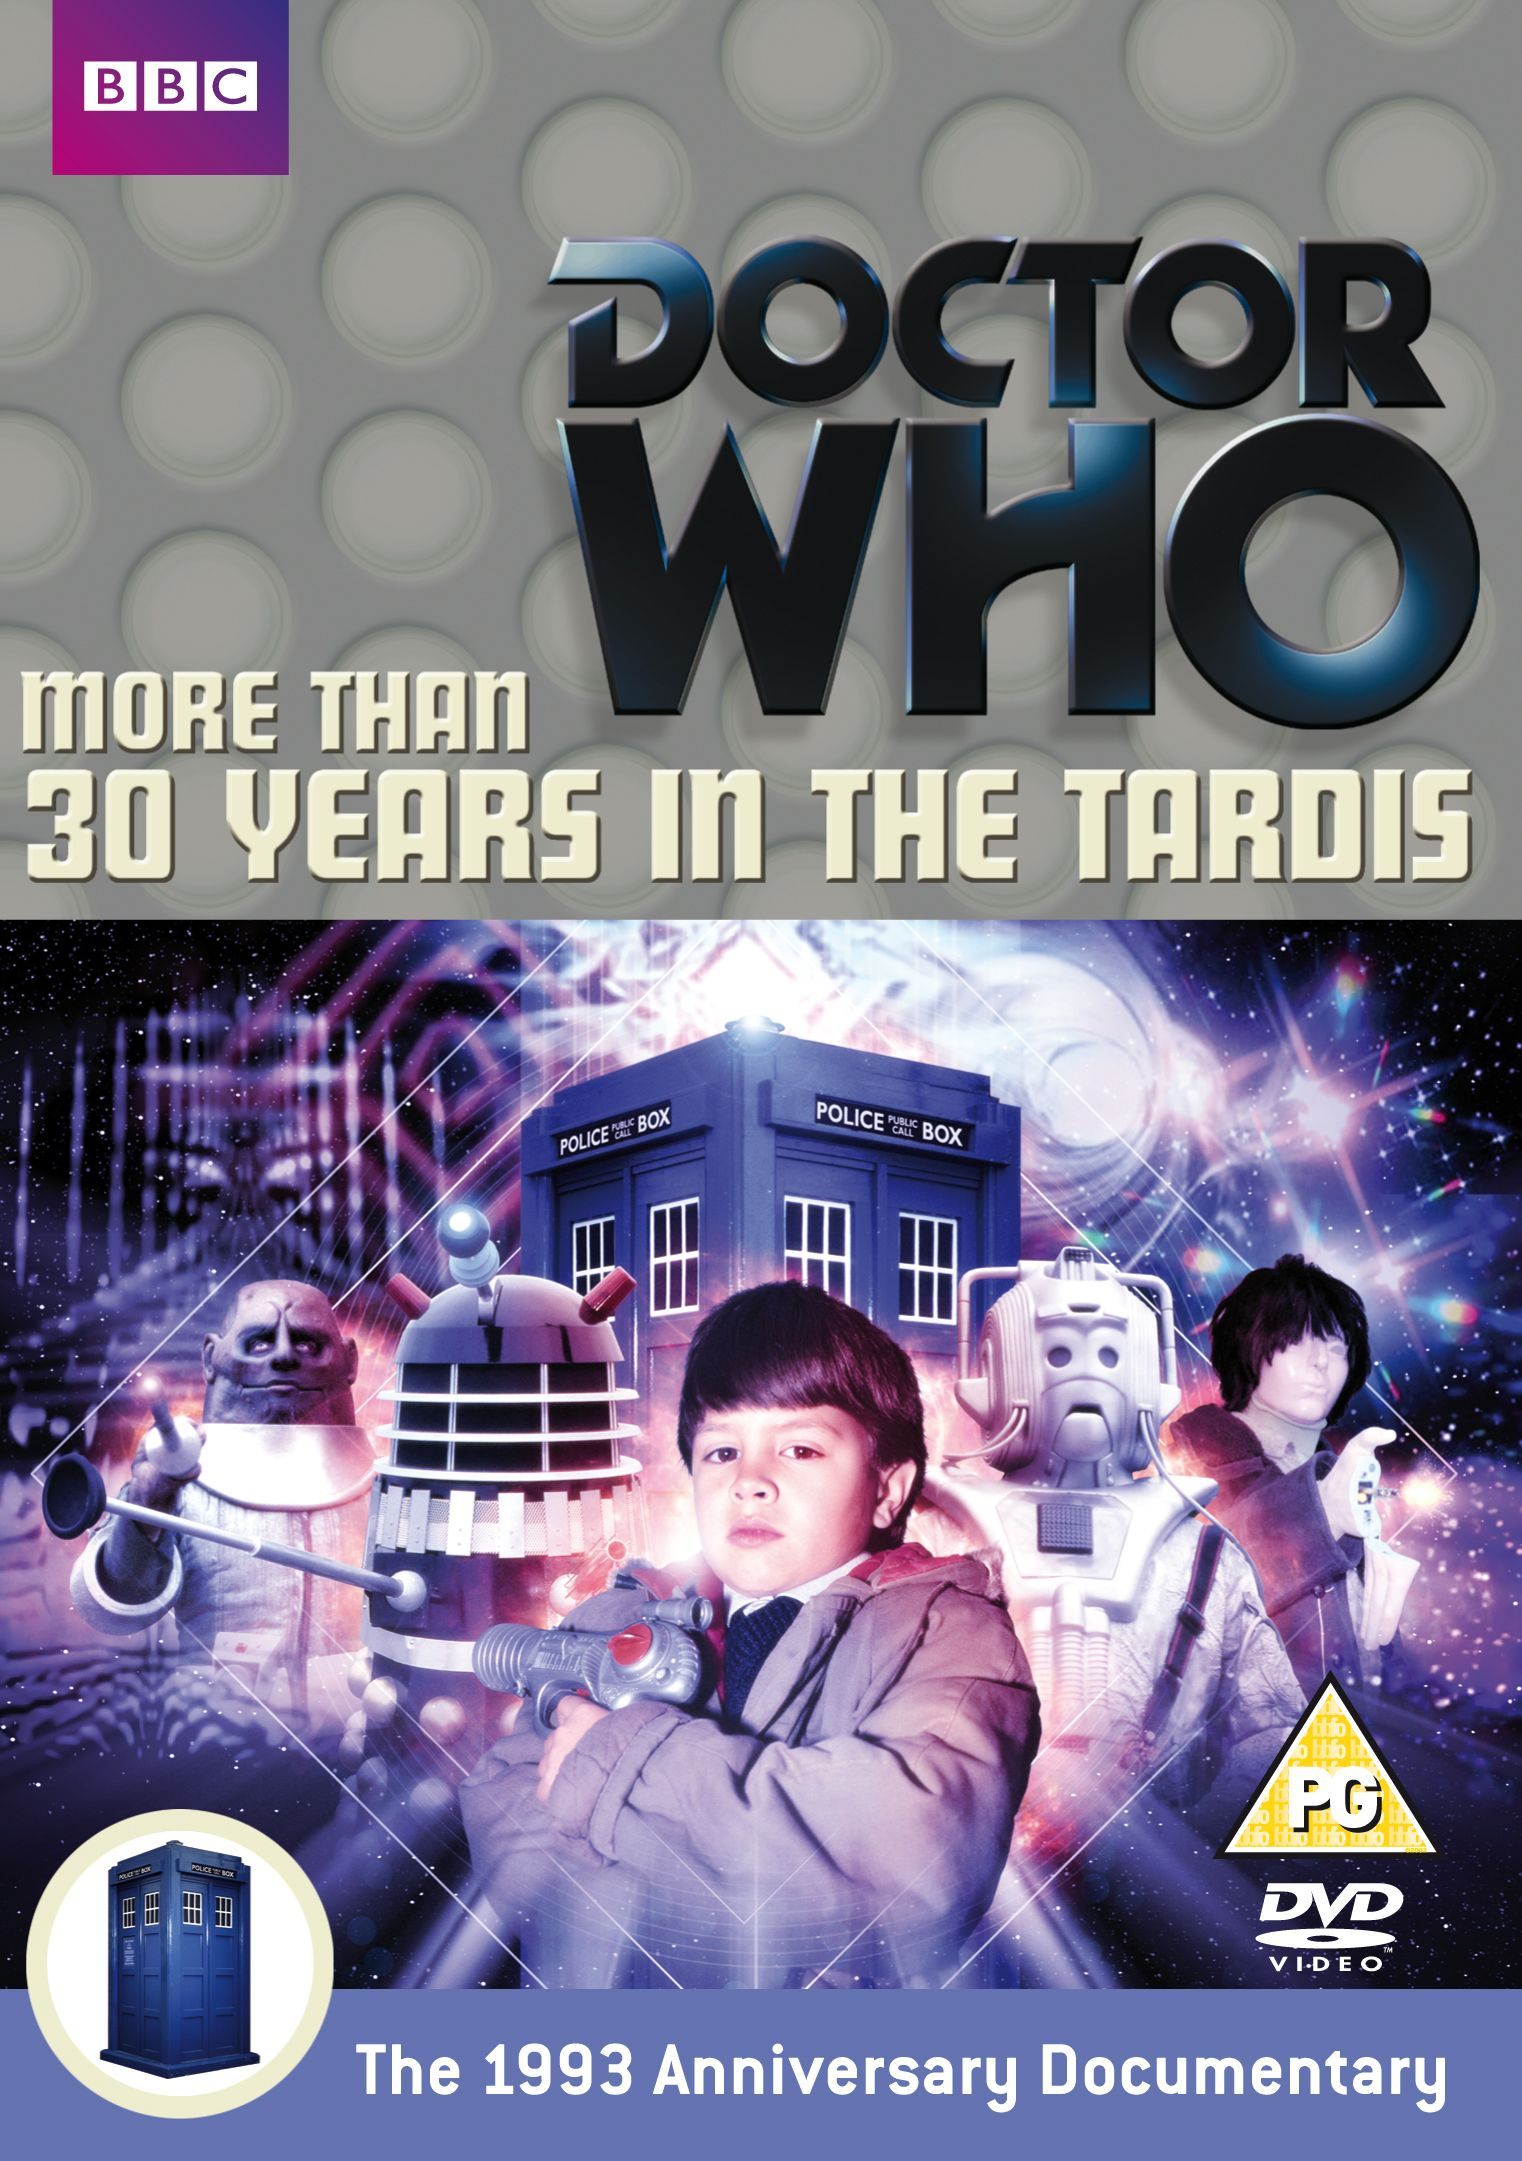 More than 30 Years in the TARDIS cover